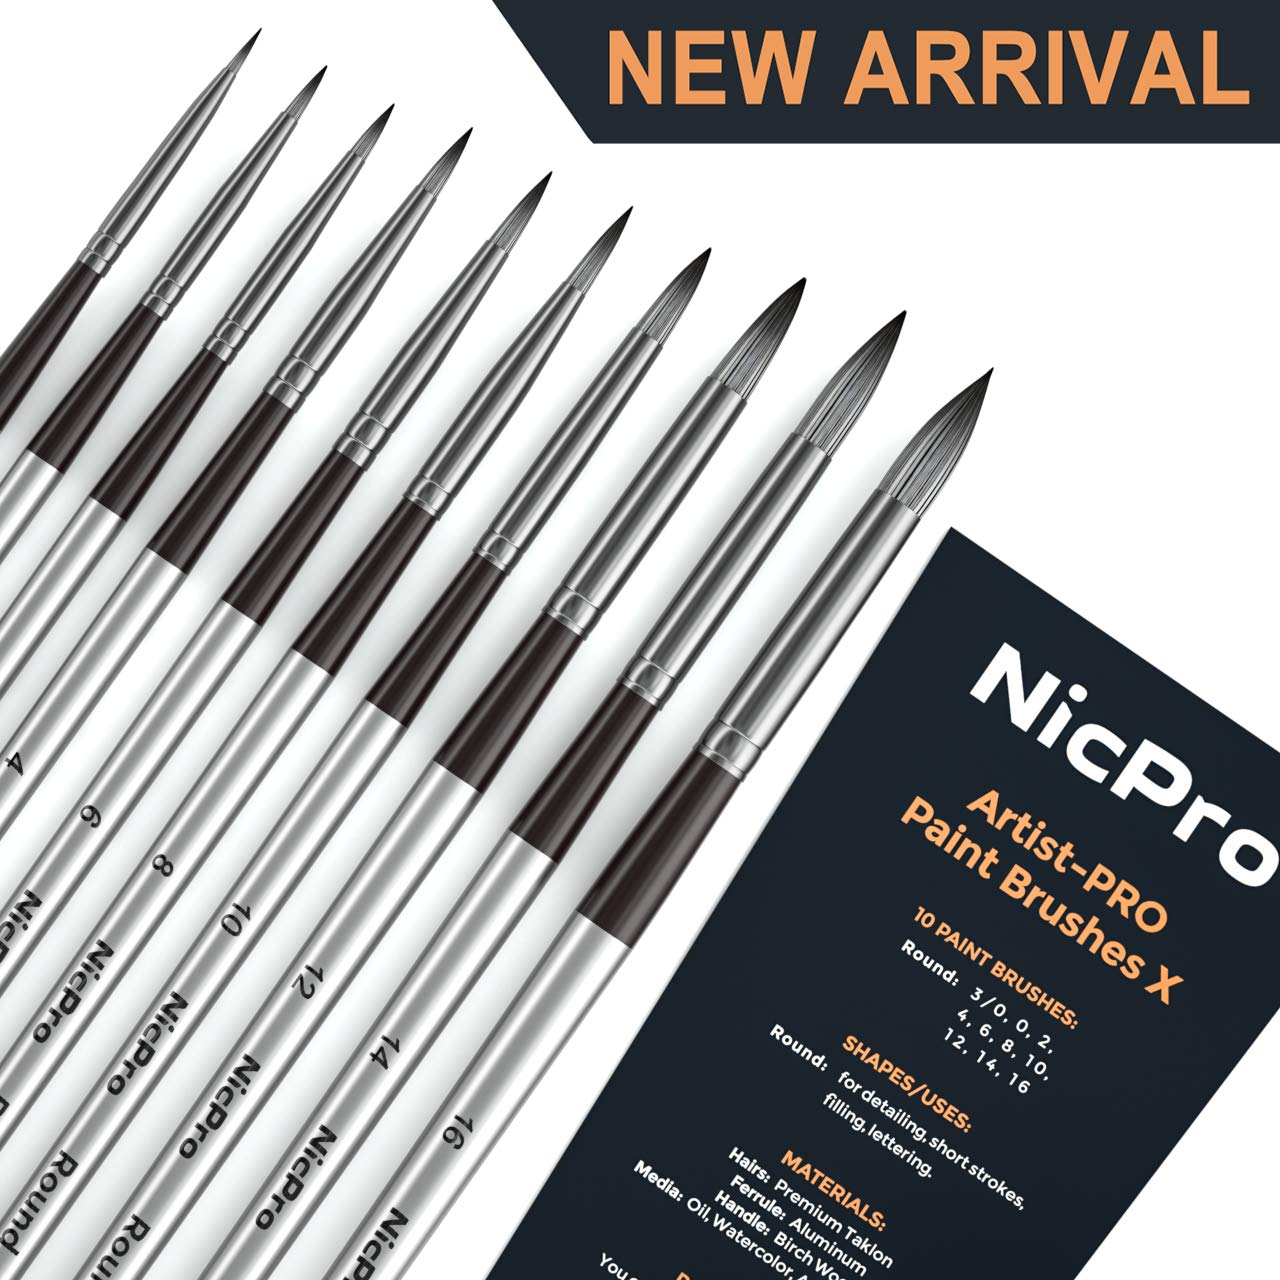 Nicpro 10 PCS Round Paint Brush Set Artist Painting Brushes for Watercolor Acrylic Oil, Art Paintbrush by Nicpro